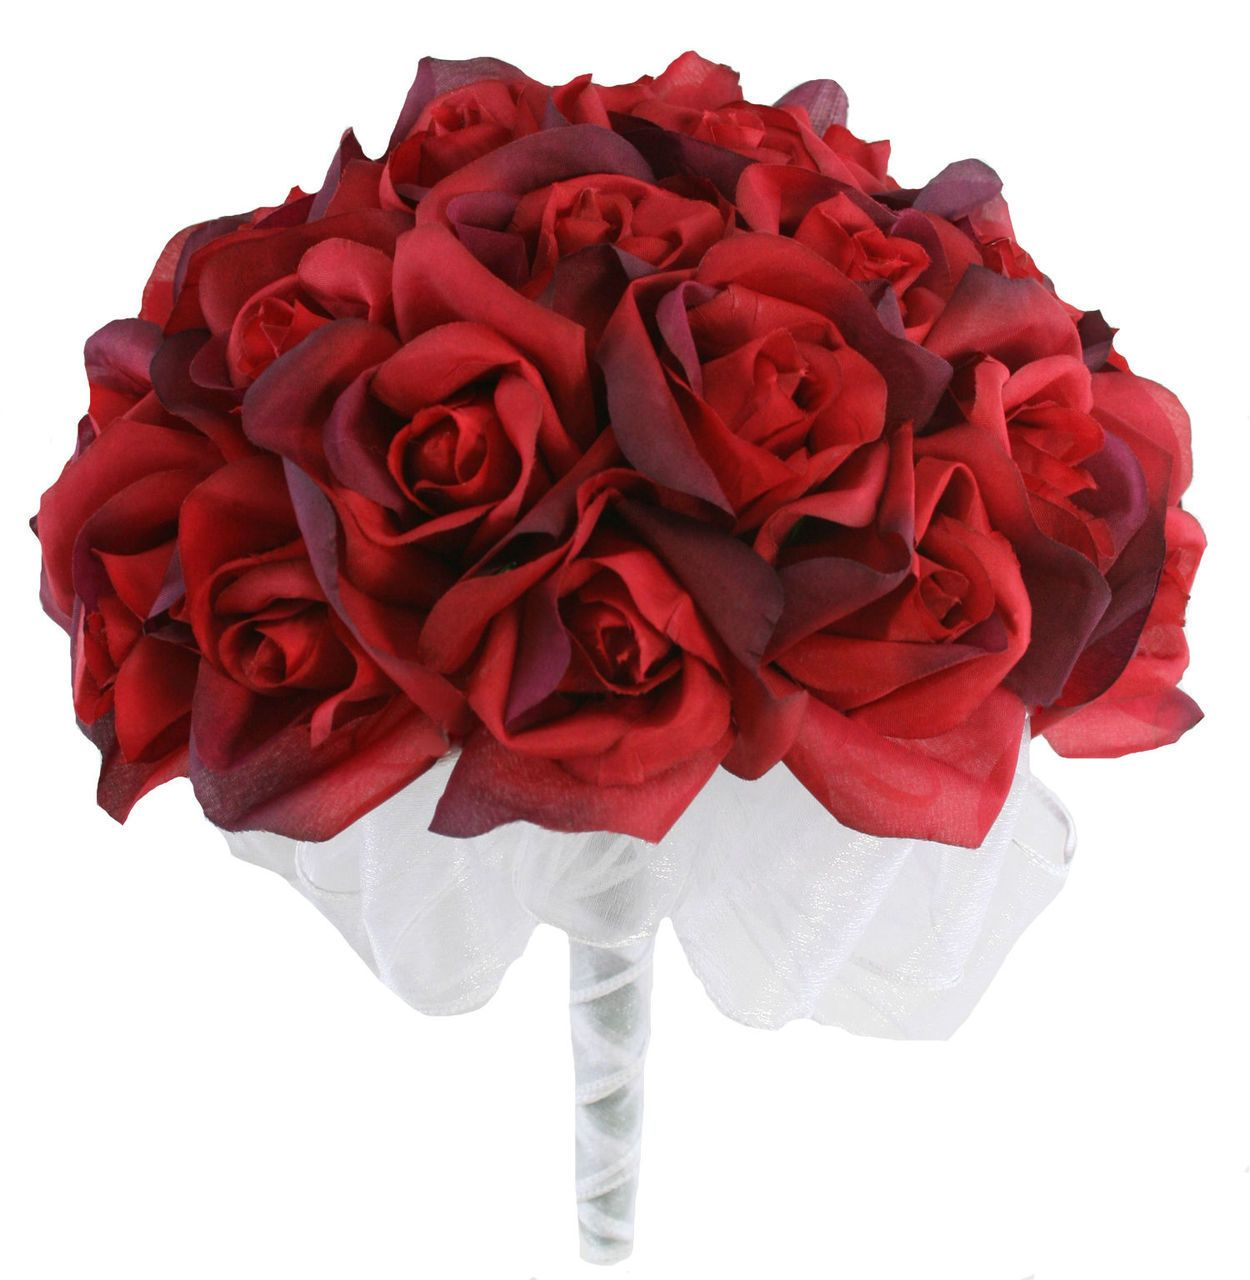 Christmas Red Velvet Rose Bouquet Wedding | Silk Wedding Flowers | Cheap Bridal Bouquets | Bridesmaid Bouquets | Artificial Wedding Bouquets | Buffalo Plaid Ribbon (Two Dozen Roses) #silkbridalbouquet